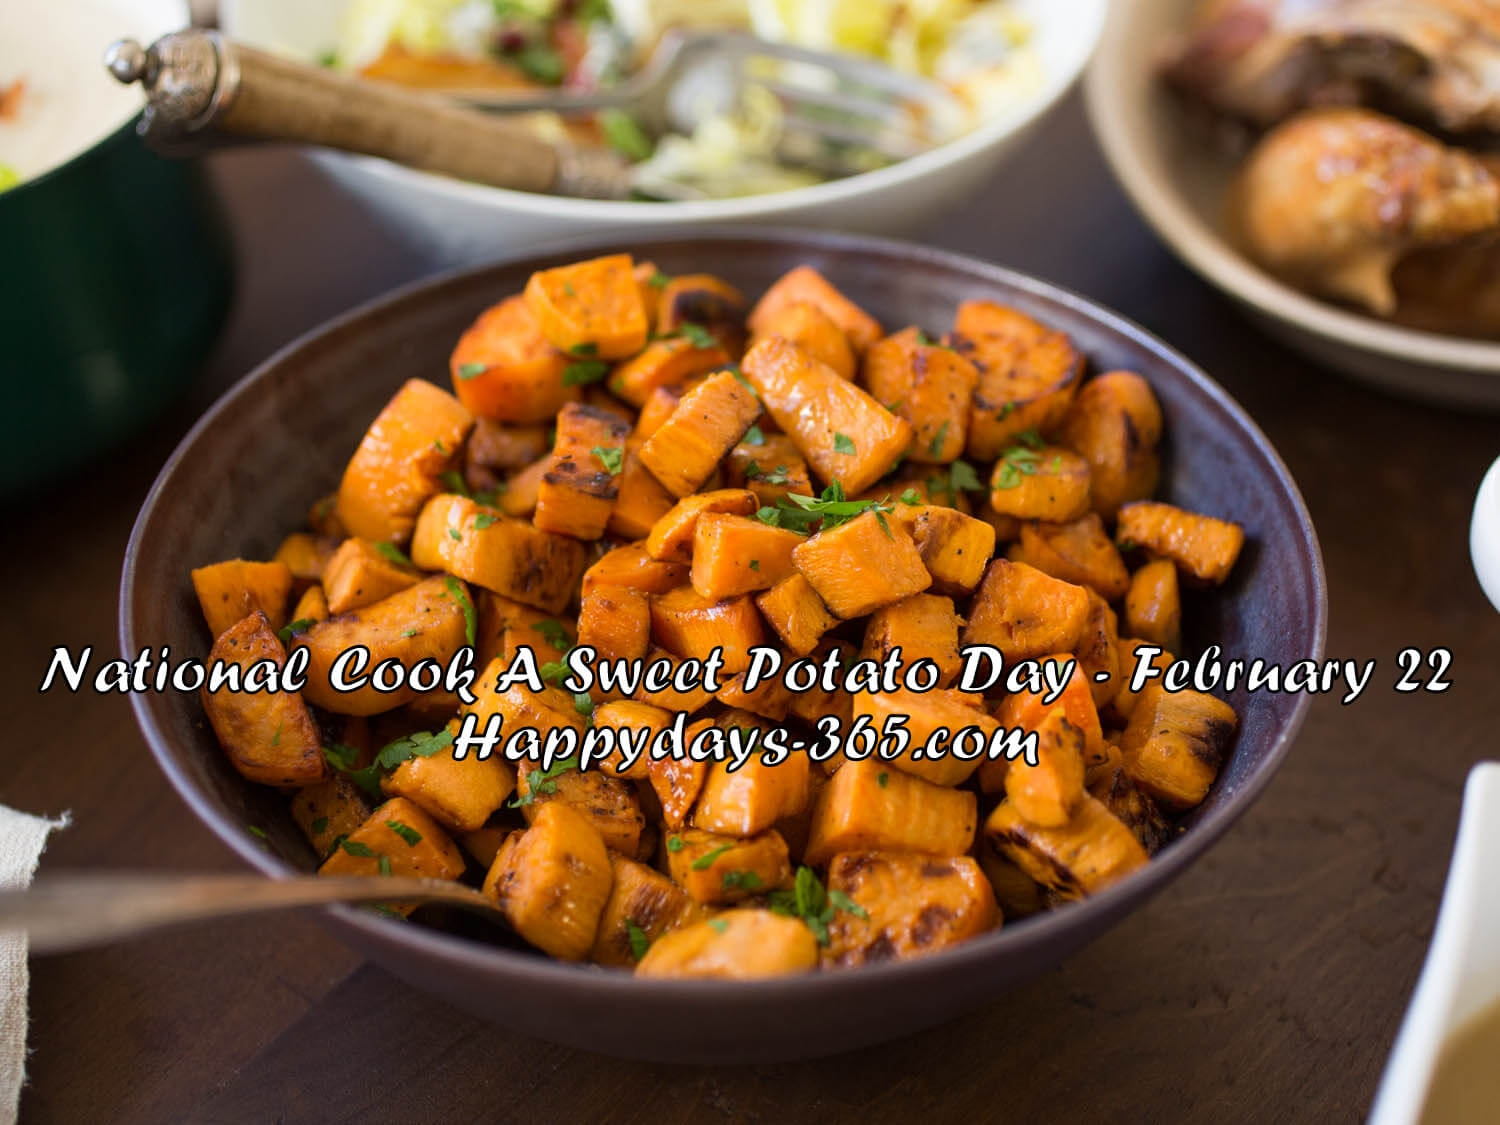 National Cook A Sweet Potato Day 2019